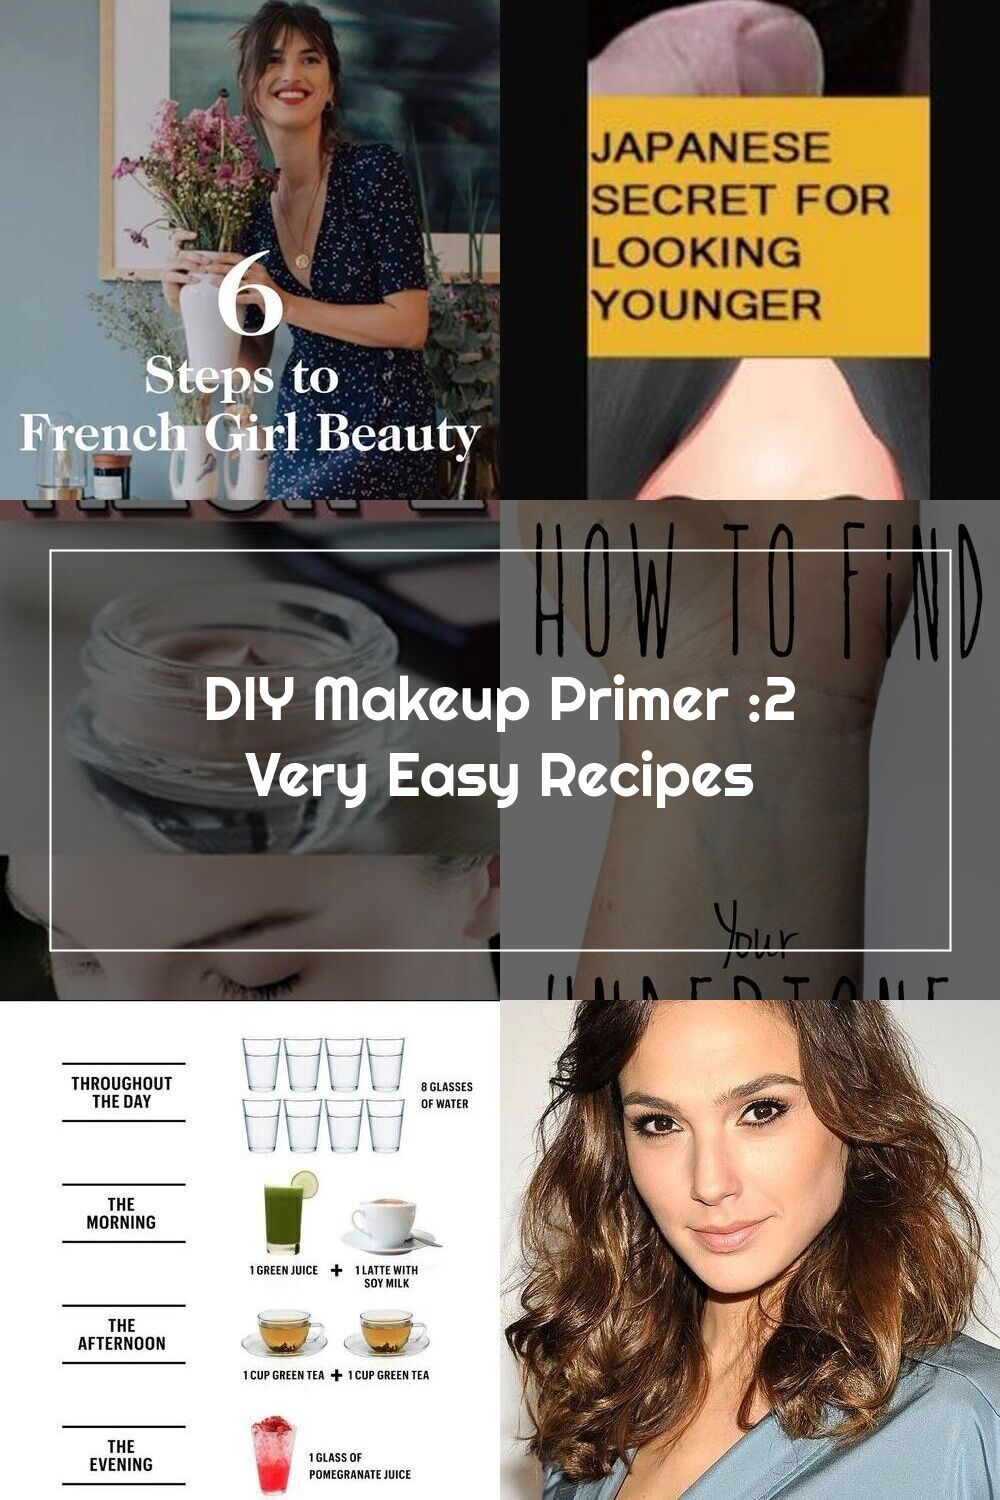 diy makeup primer recipe's only for you. stop using those